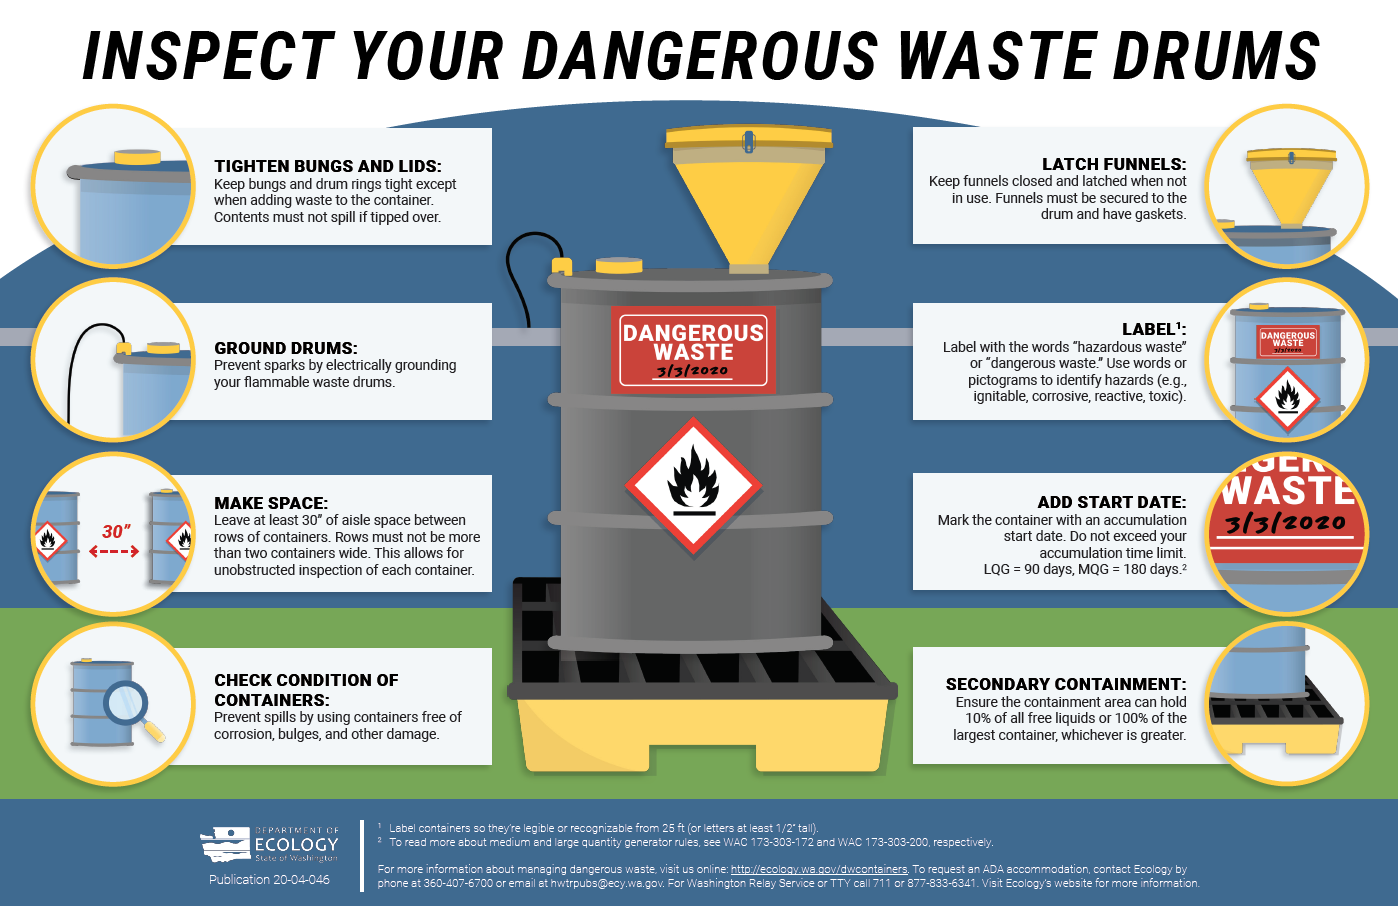 Inspect Your Dangerous Waste Drums poster. Click to go to publication 20-04-46